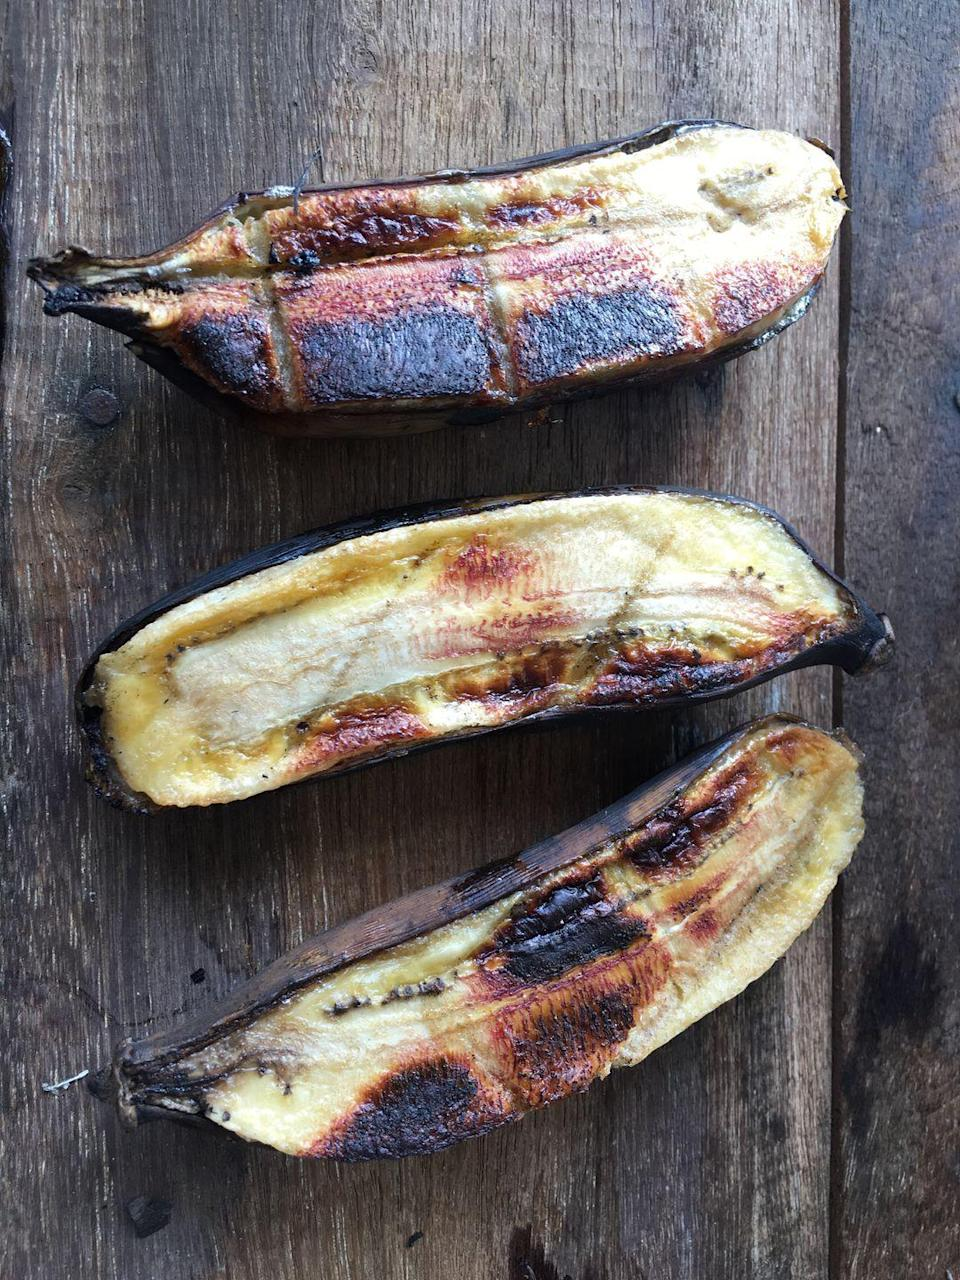 """<p>Have a bunch of unripe bananas that you don't know what to do with? The oven (alongside extra brown sugar and cinnamon) will work to caramelize sugars within the banana on high heat. </p><p><em><a href=""""https://www.goodhousekeeping.com/food-recipes/a4356/broiled-brown-sugar-bananas-1153/"""" rel=""""nofollow noopener"""" target=""""_blank"""" data-ylk=""""slk:Get the Broiled Brown-Sugar Bananas recipe »"""" class=""""link rapid-noclick-resp"""">Get the Broiled Brown-Sugar Bananas recipe »</a></em></p>"""